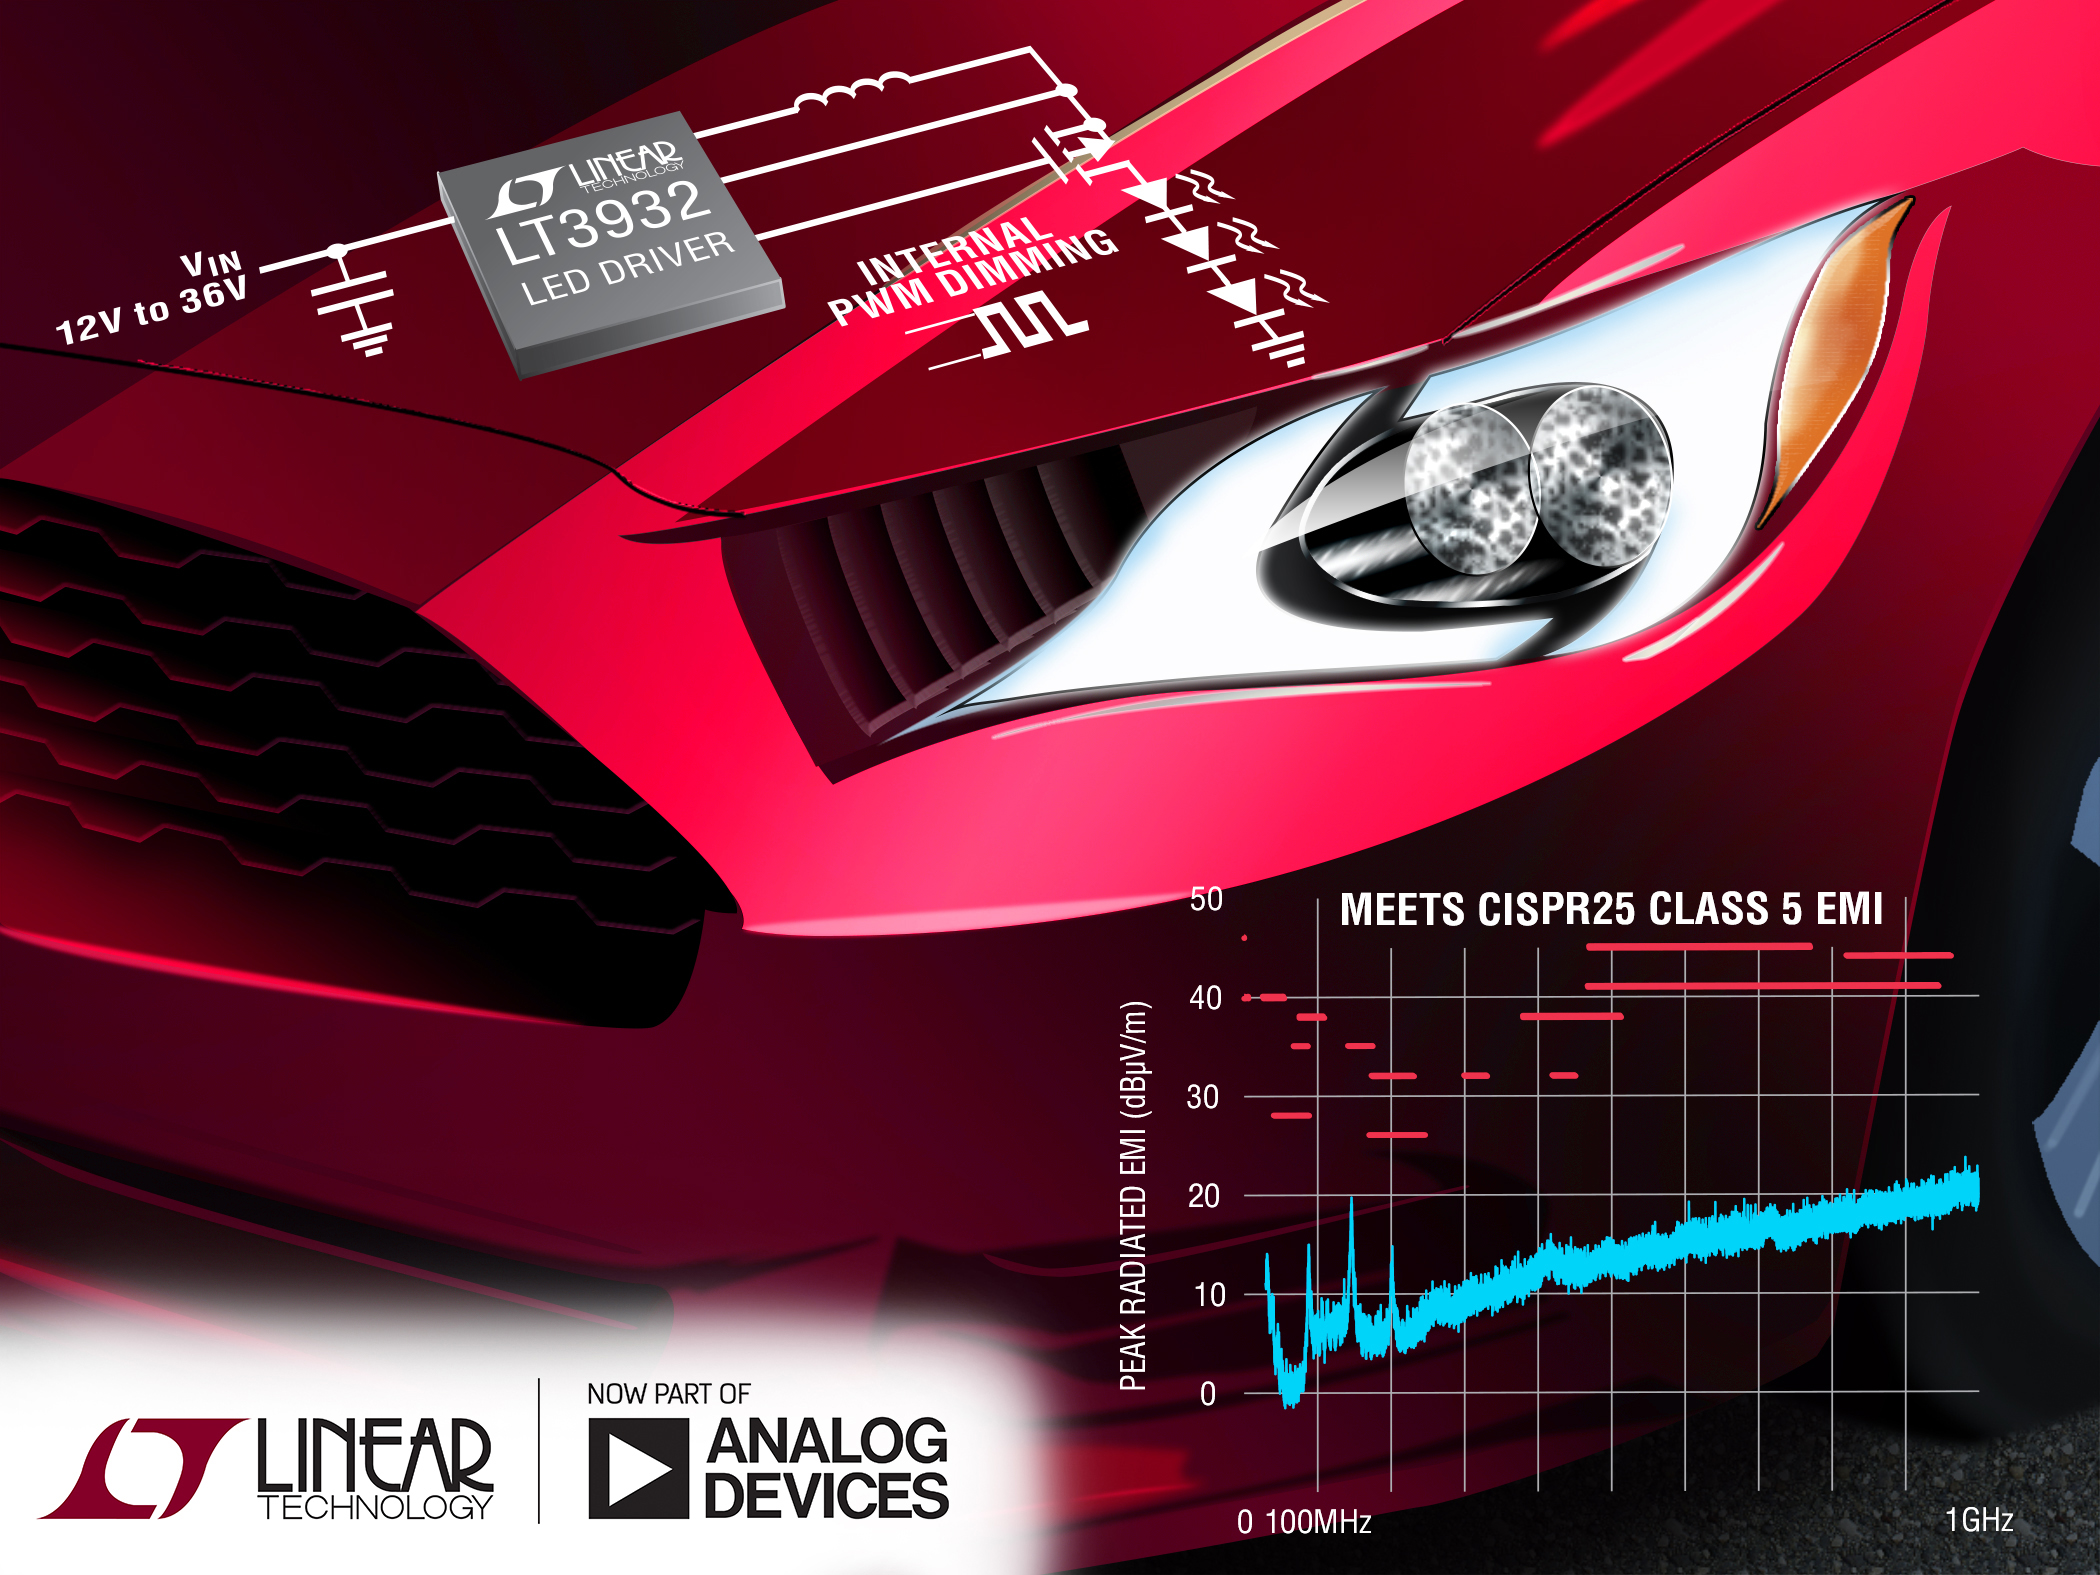 Step-down LED driver with silent switcher topology minimises EMI concerns